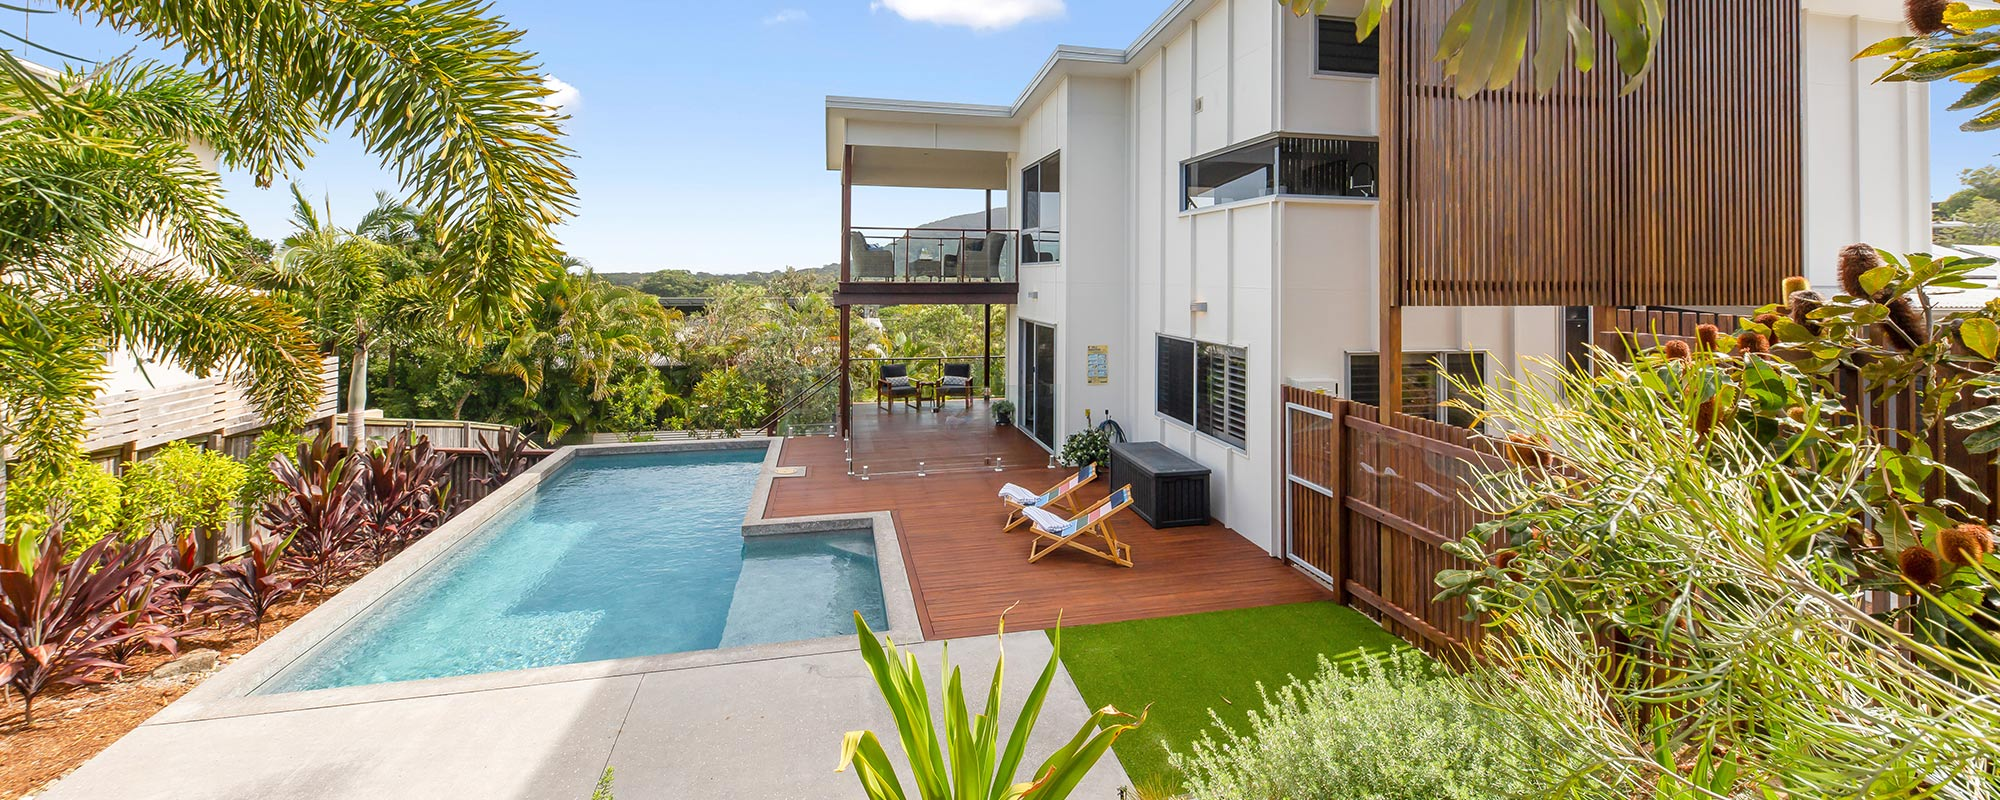 No.1 for Coolum Beach Sales 2020